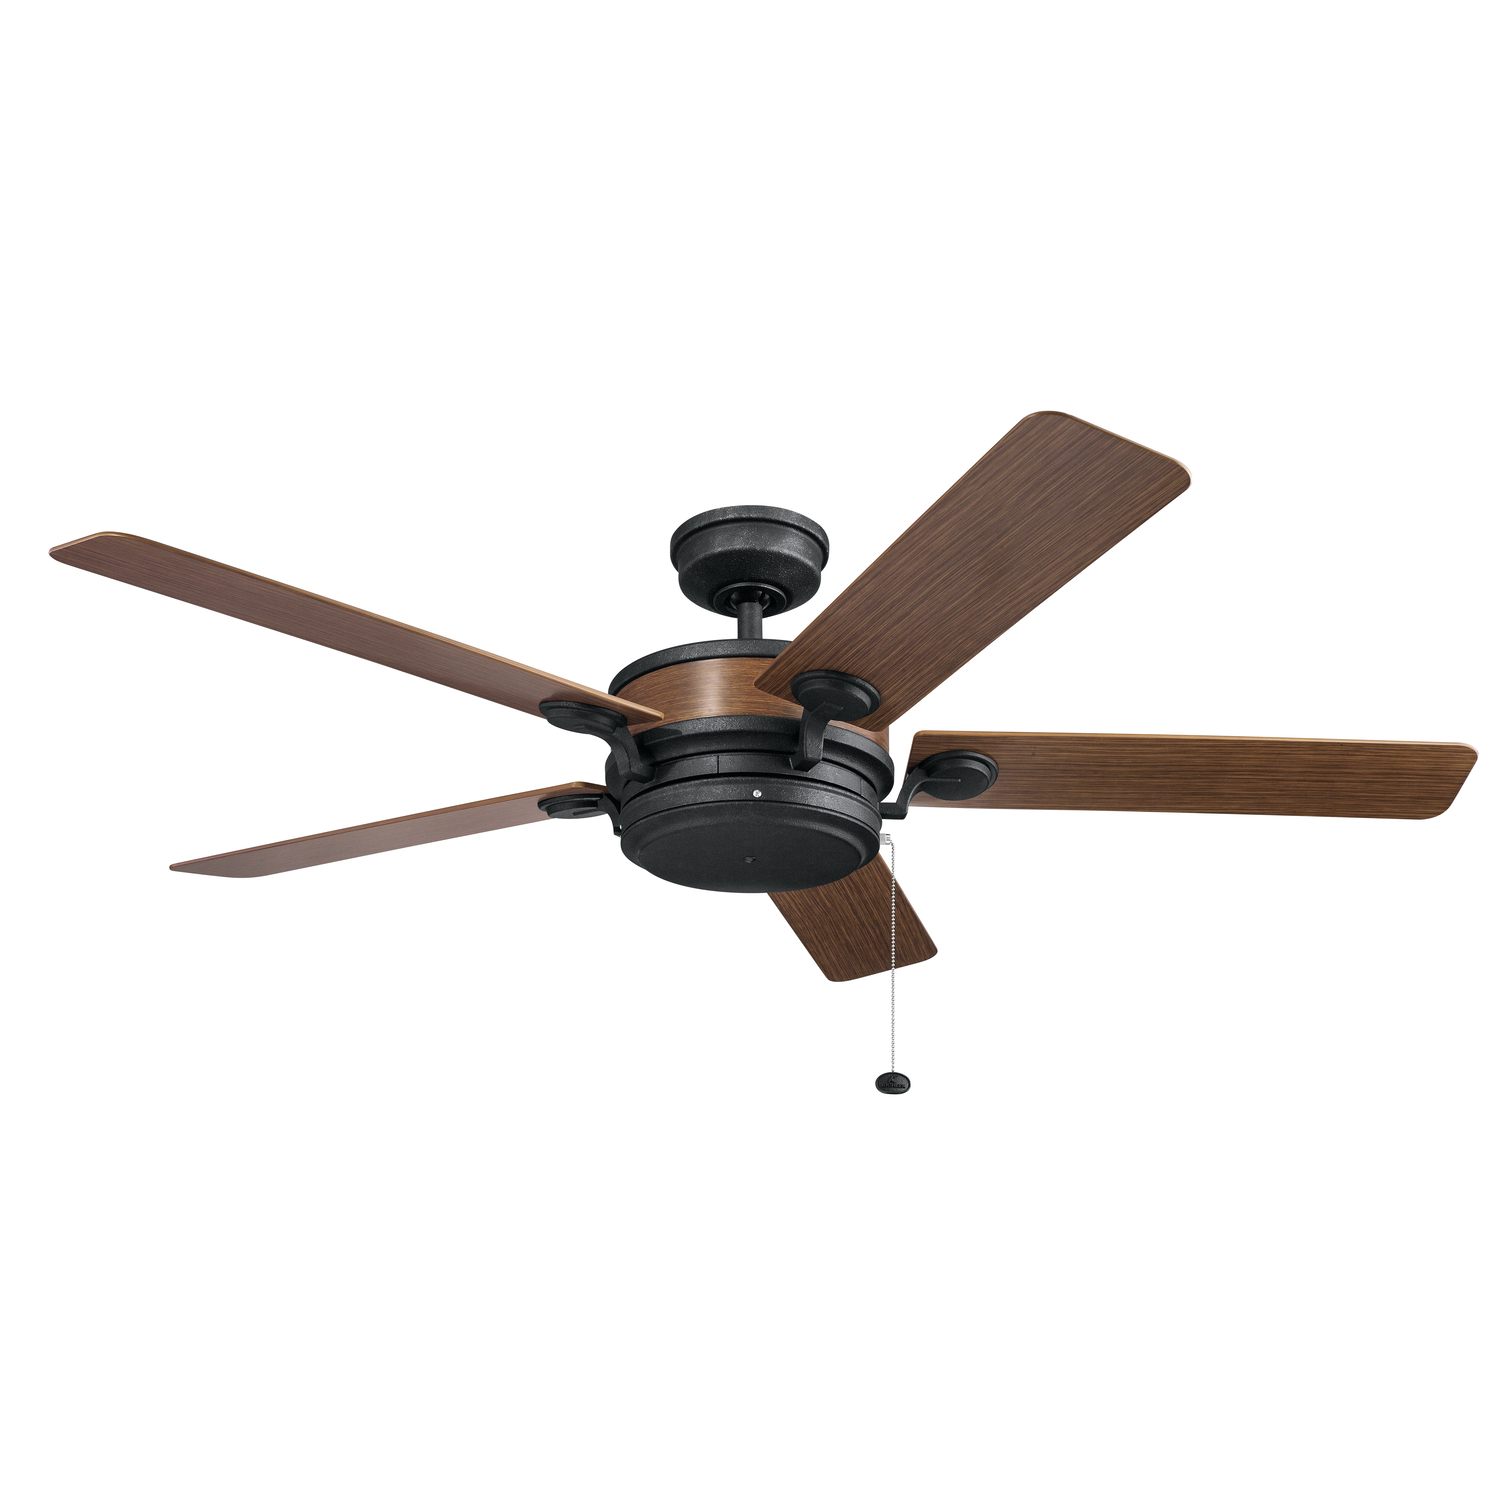 60 inchCeiling Fan from the Uma collection by Kichler 310085AUB